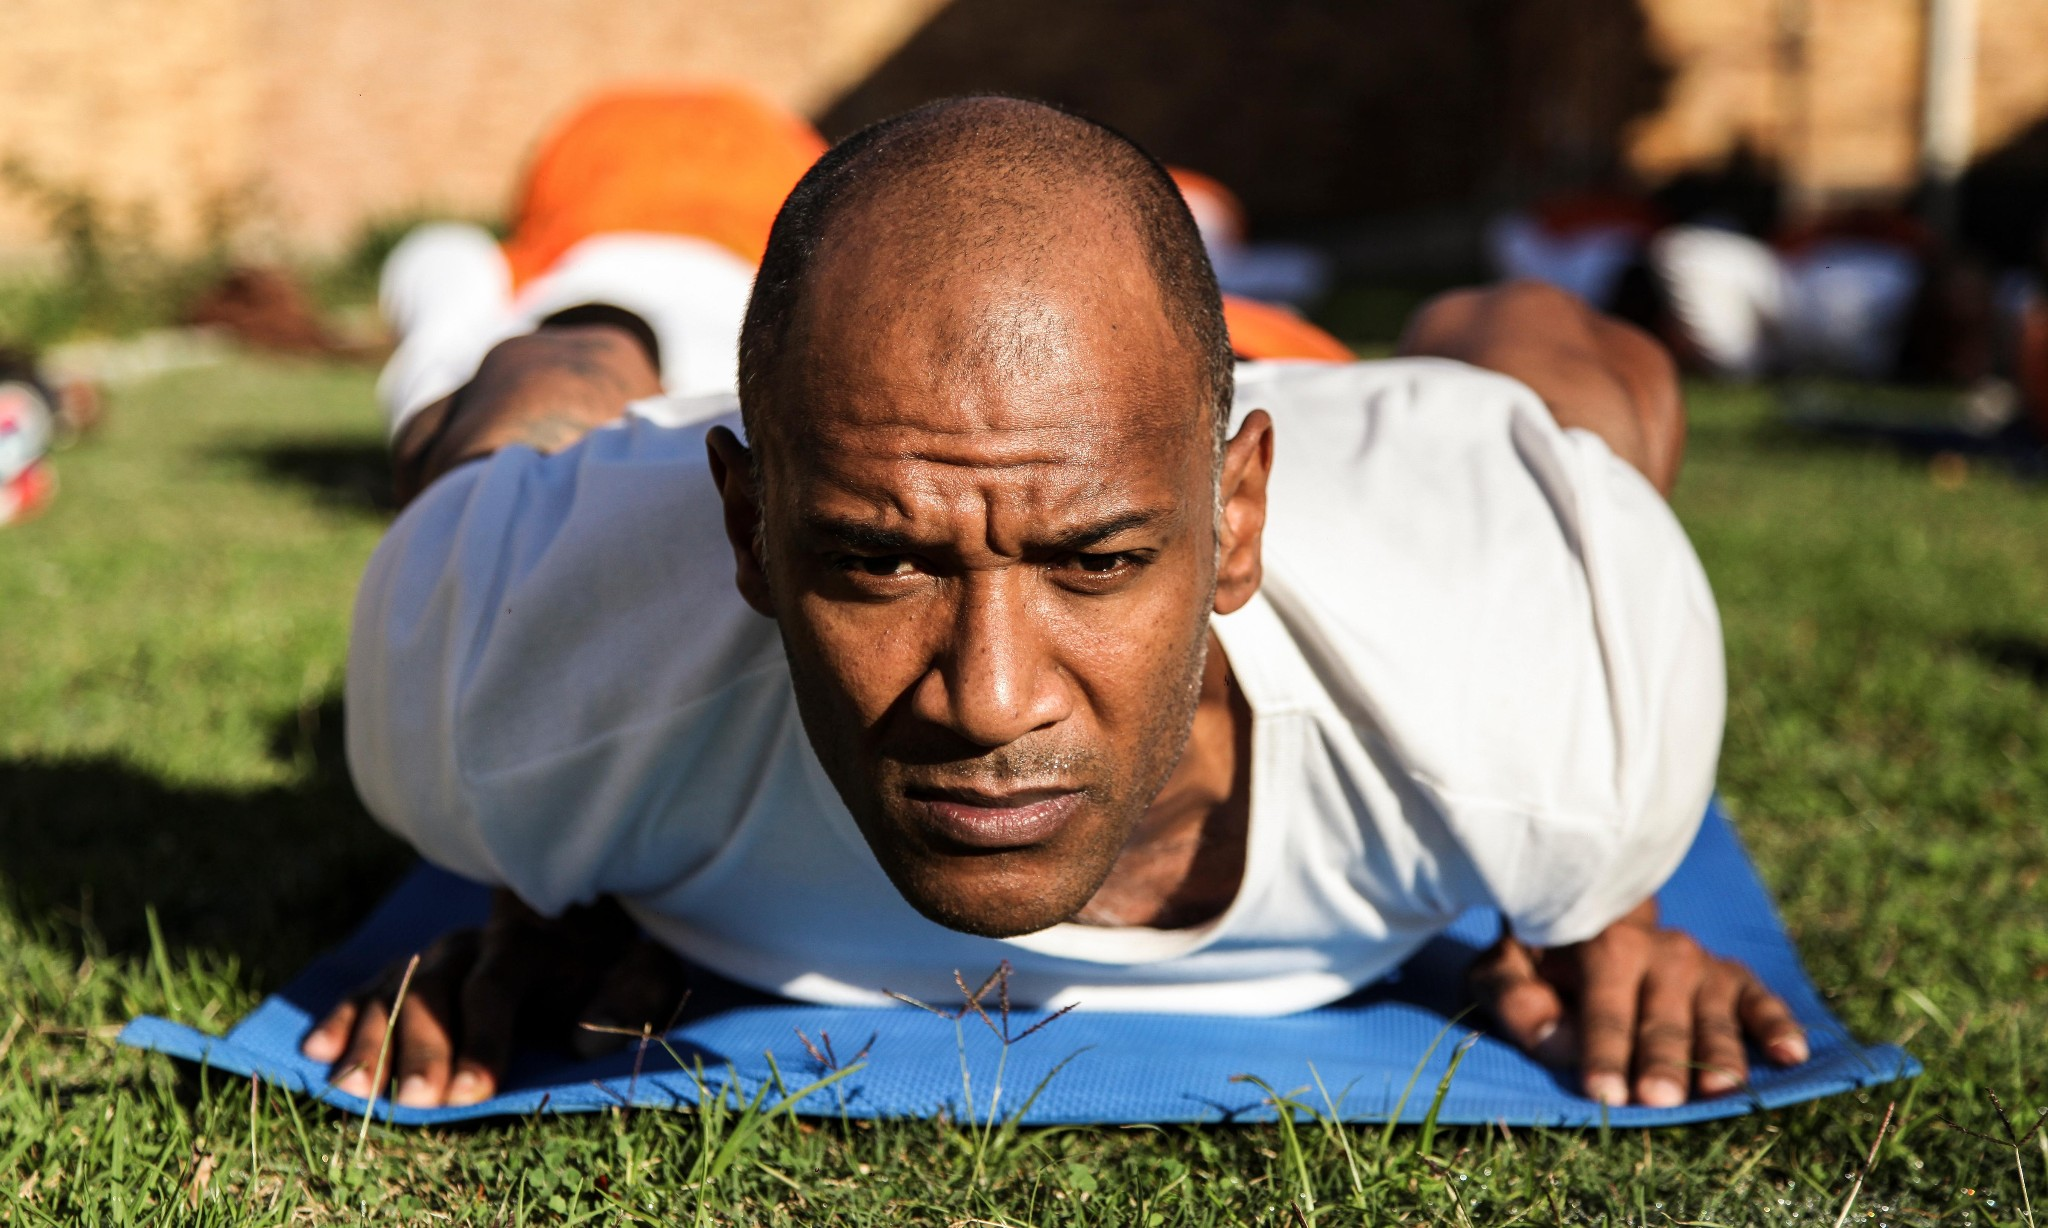 Doing a stretch: how yoga is cutting stress in South African prisons